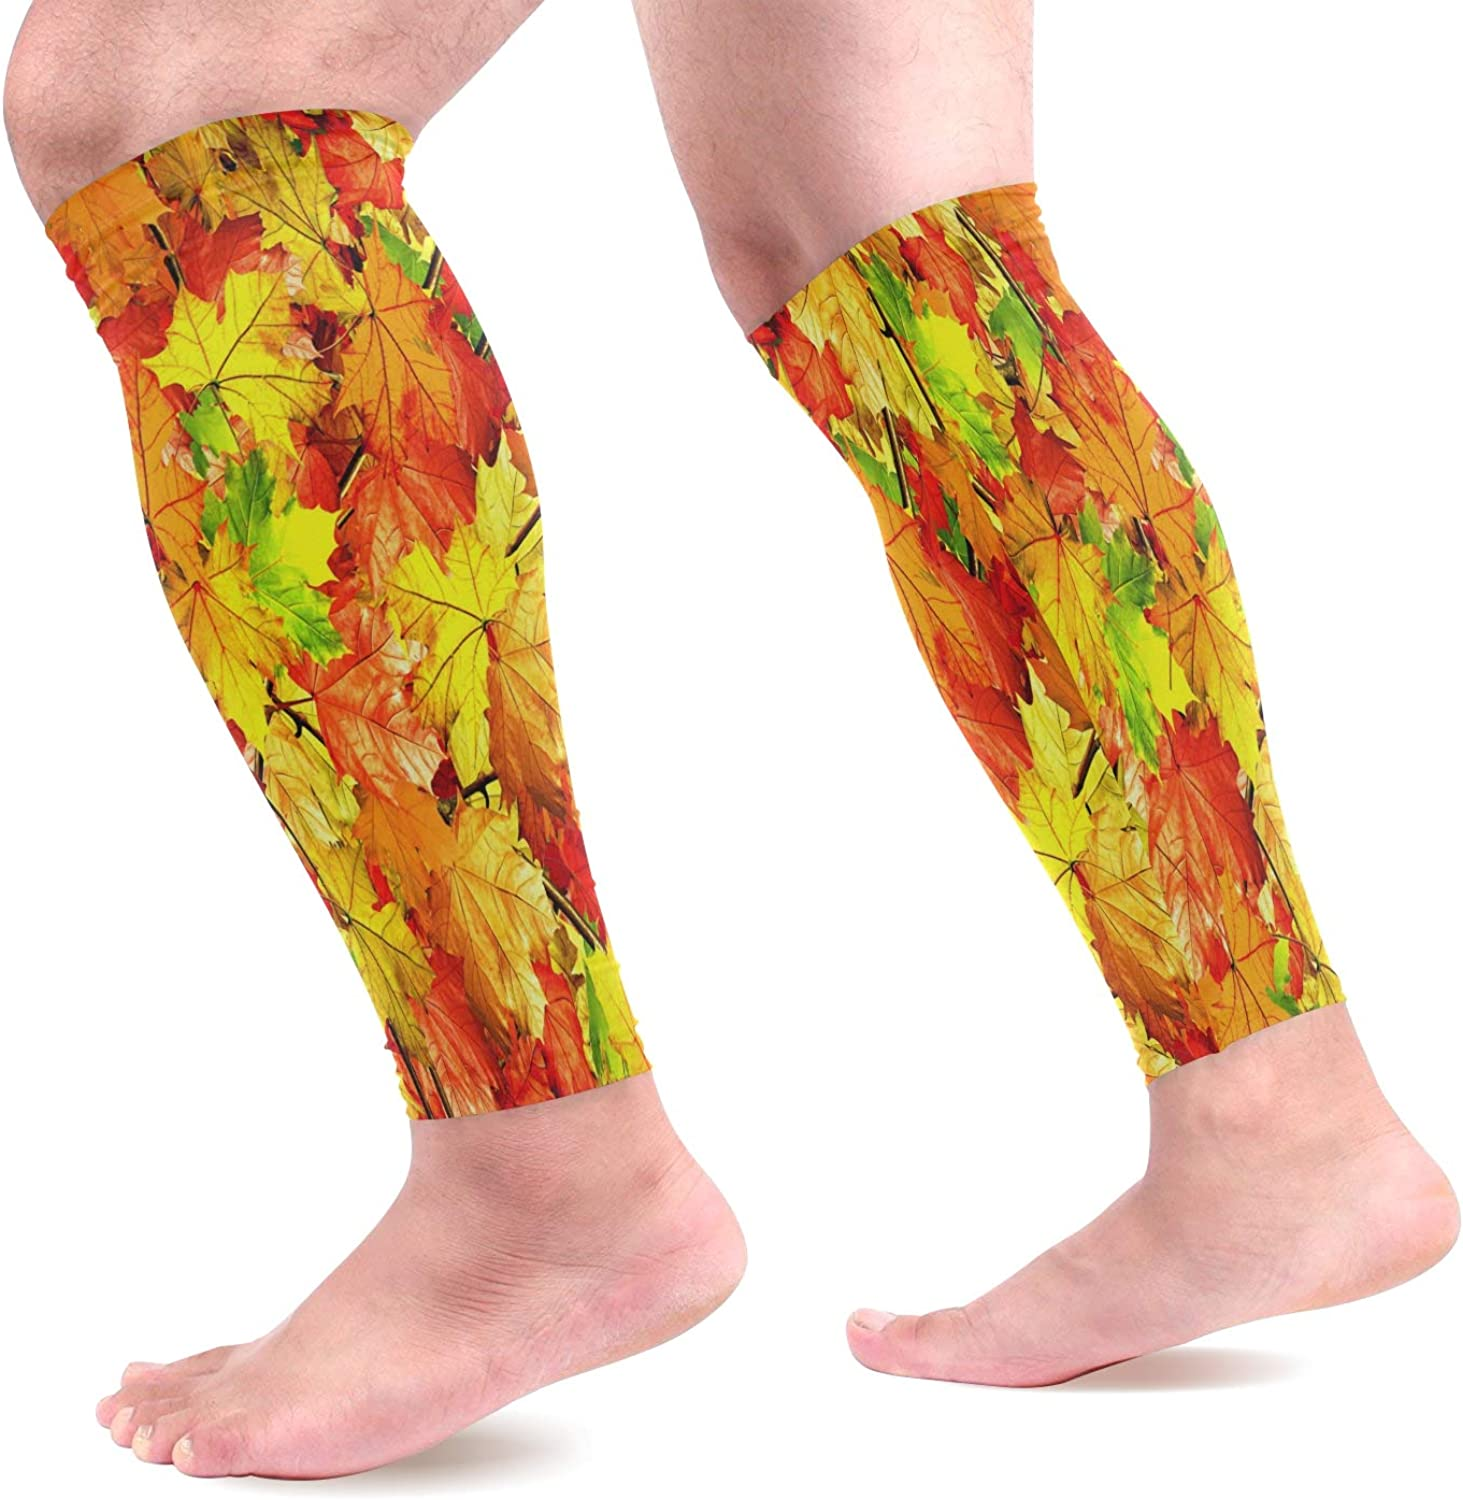 visesunny Autumn Leaves of Maple Sports Calf Support Sleeves (1 Pair) for Muscle Pain Relief, Improved Circulation Compression – Effective Support for Running, Jogging,Workout,Recovery